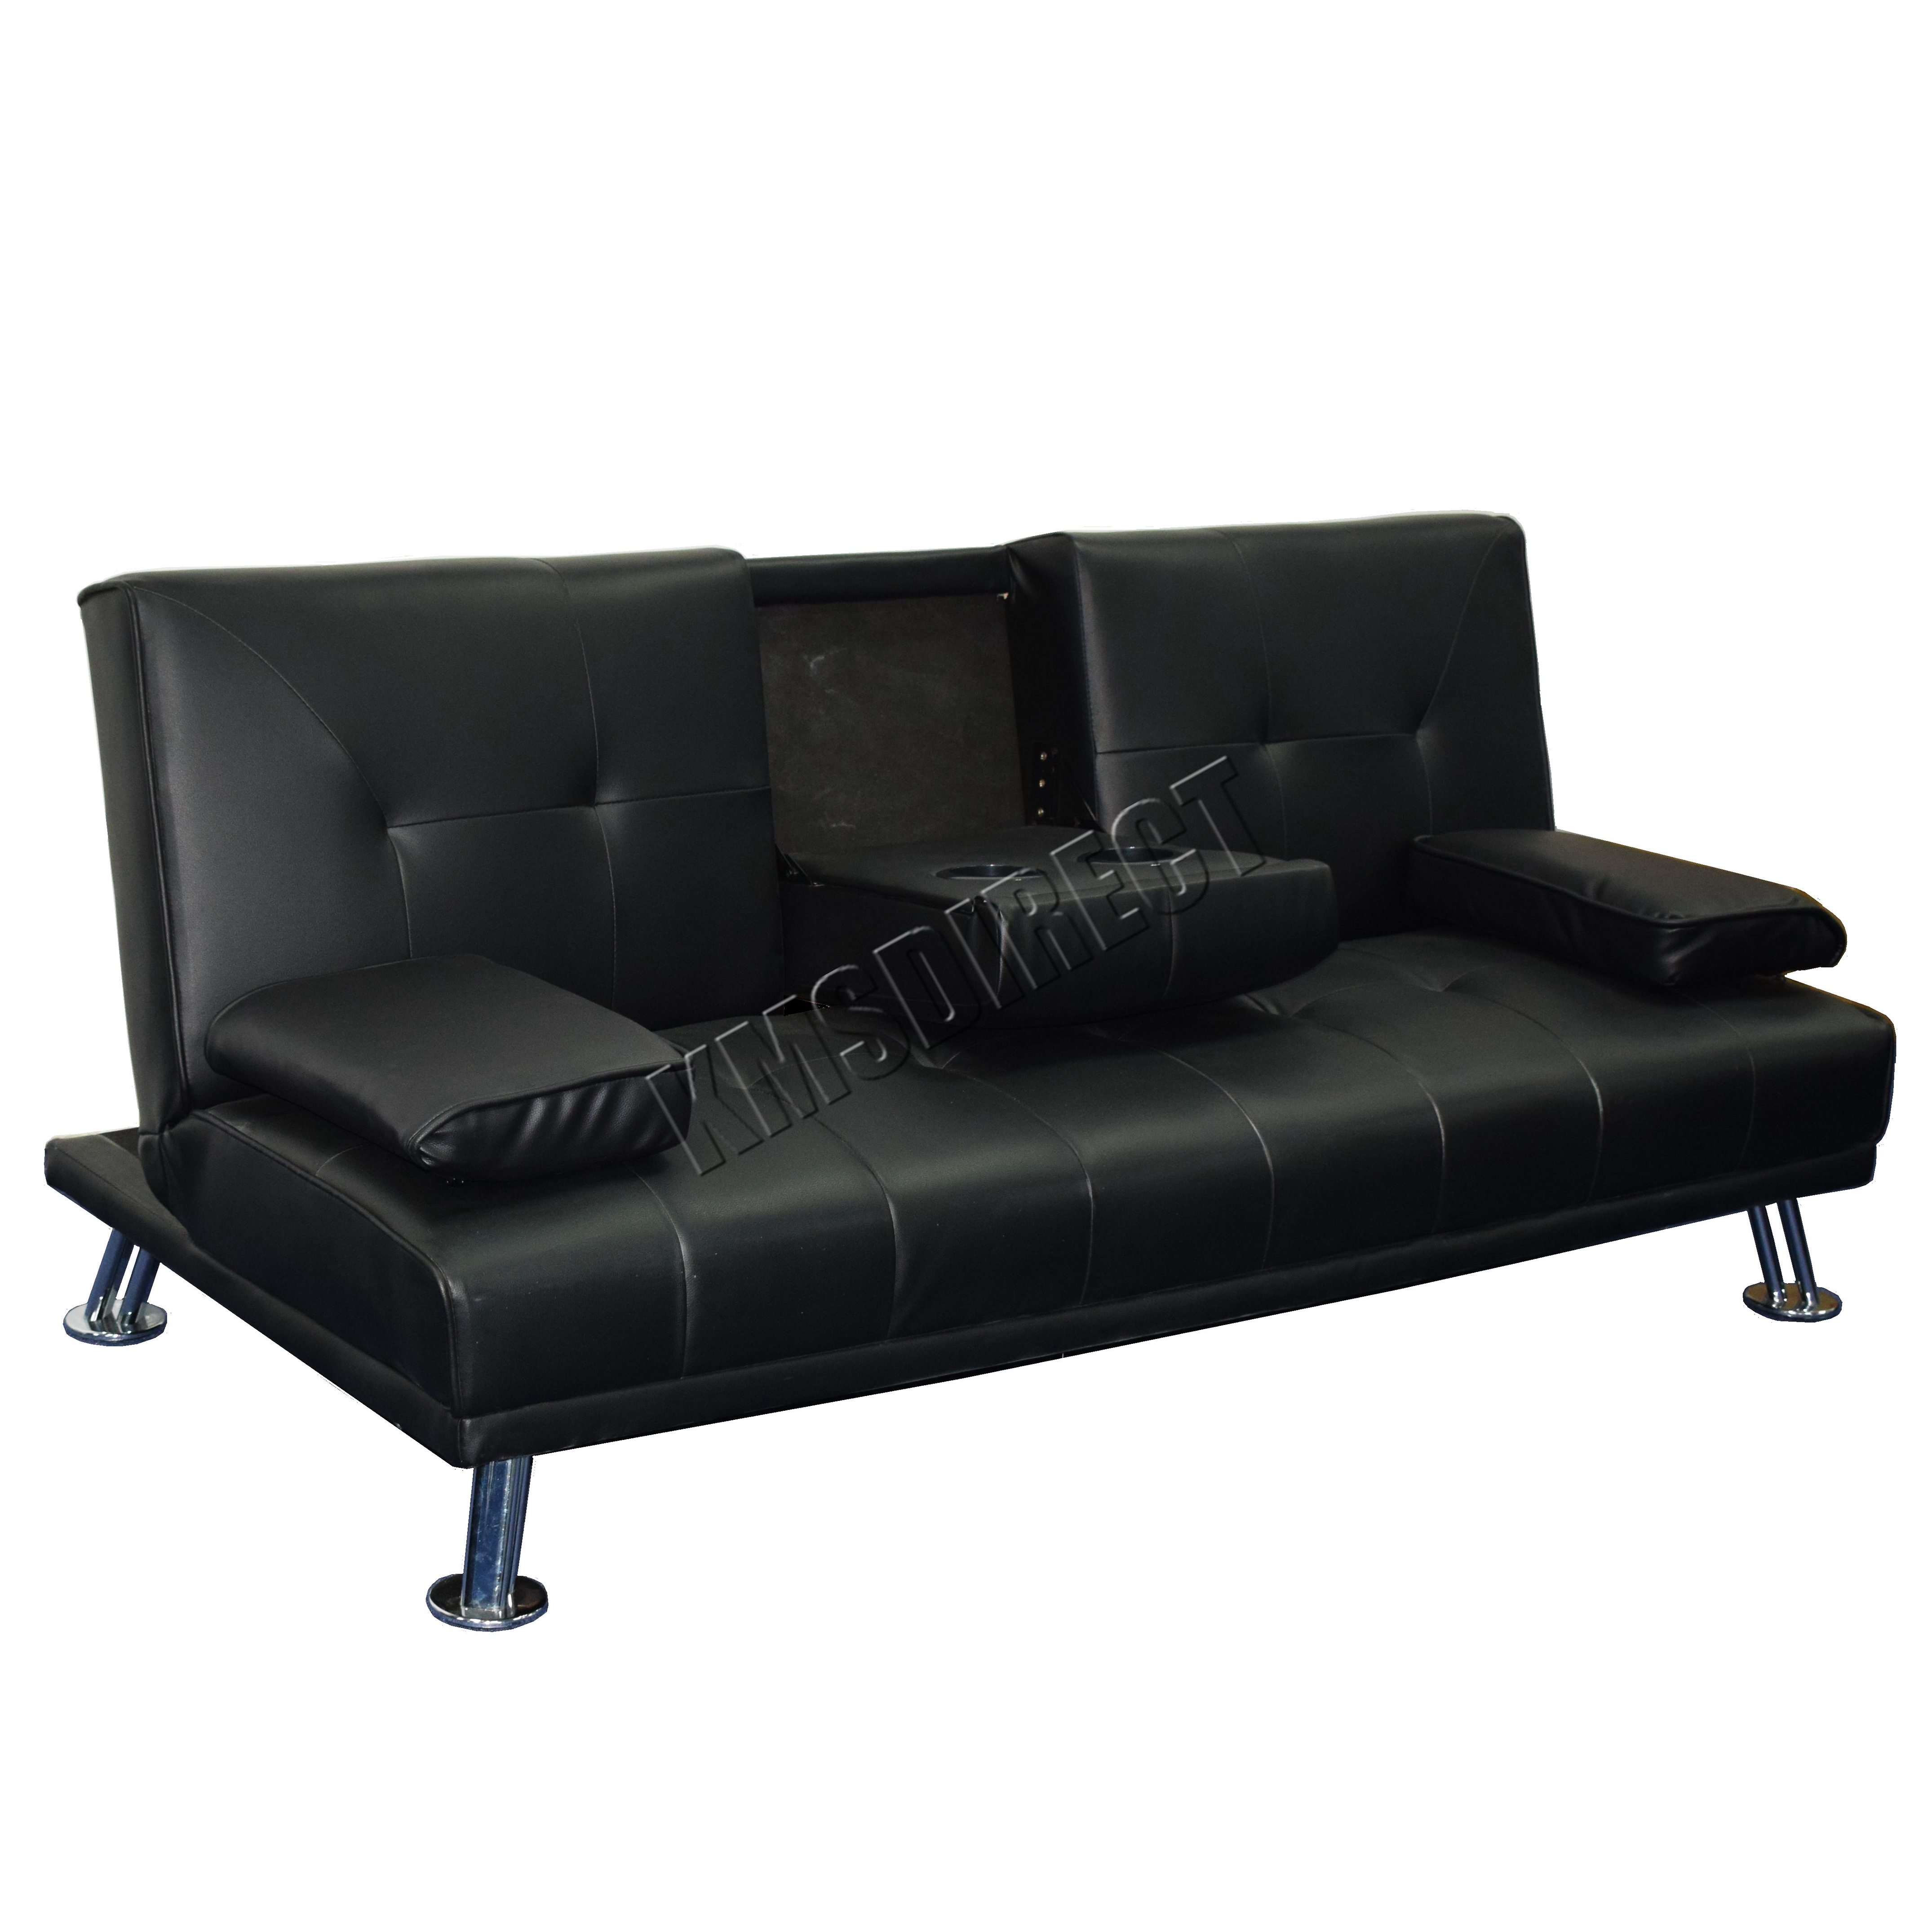 leather 3 seat sofa bed flexsteel sleeper ratings westwood faux manhattan recliner seater